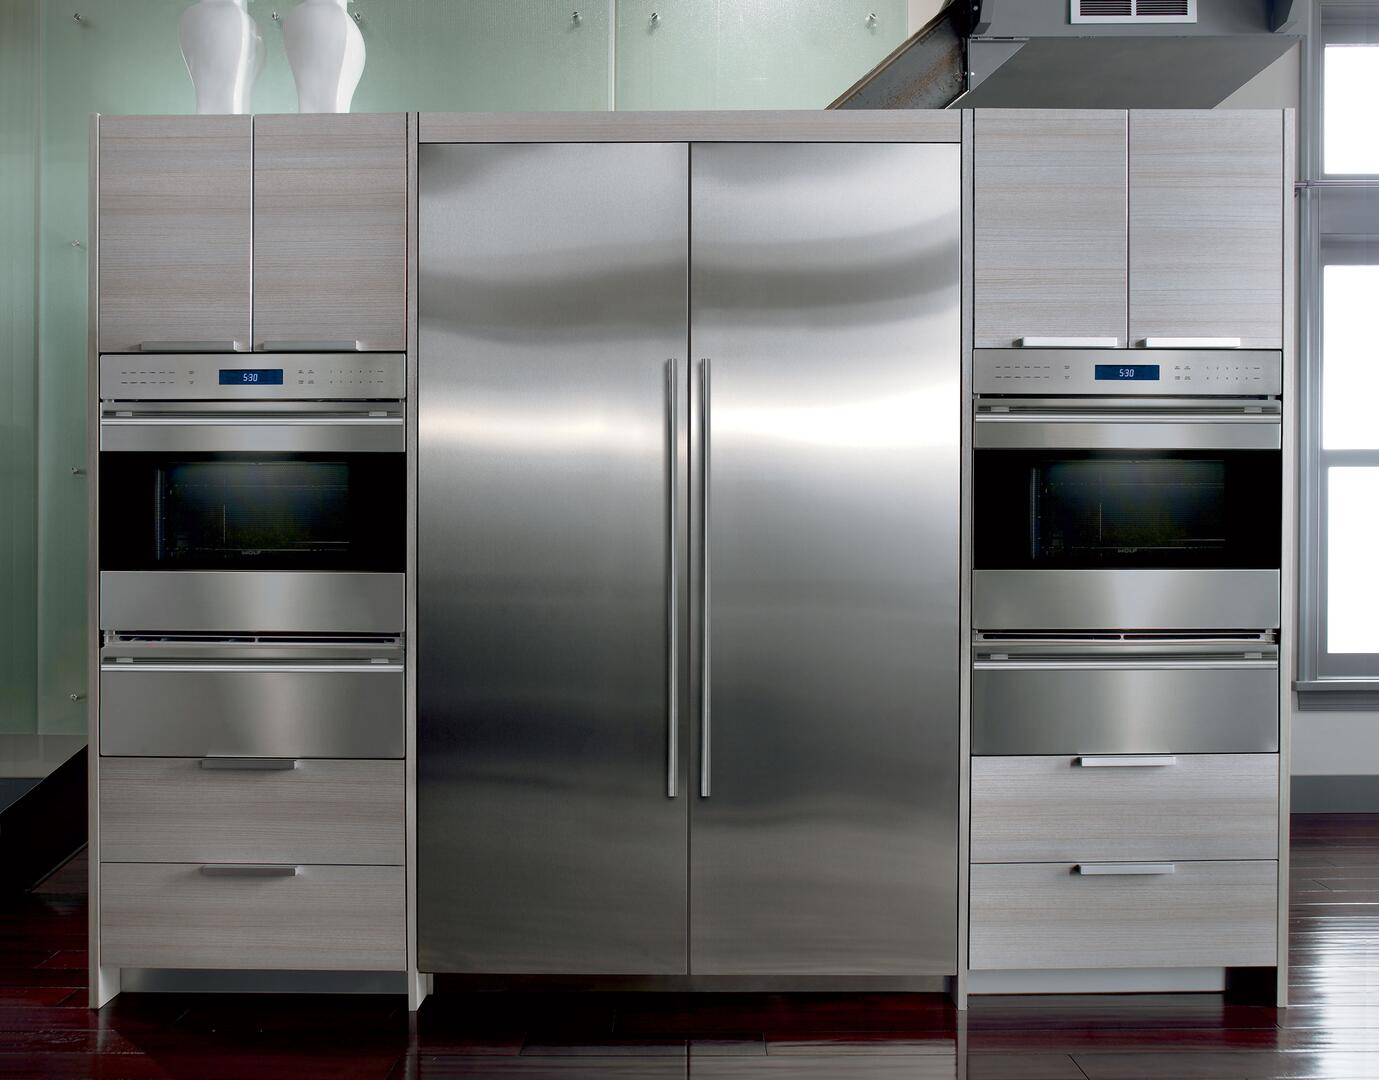 Sub zero counter depth refrigerator -  Sub Zero Shown In Stainless Steel With Matching Unit